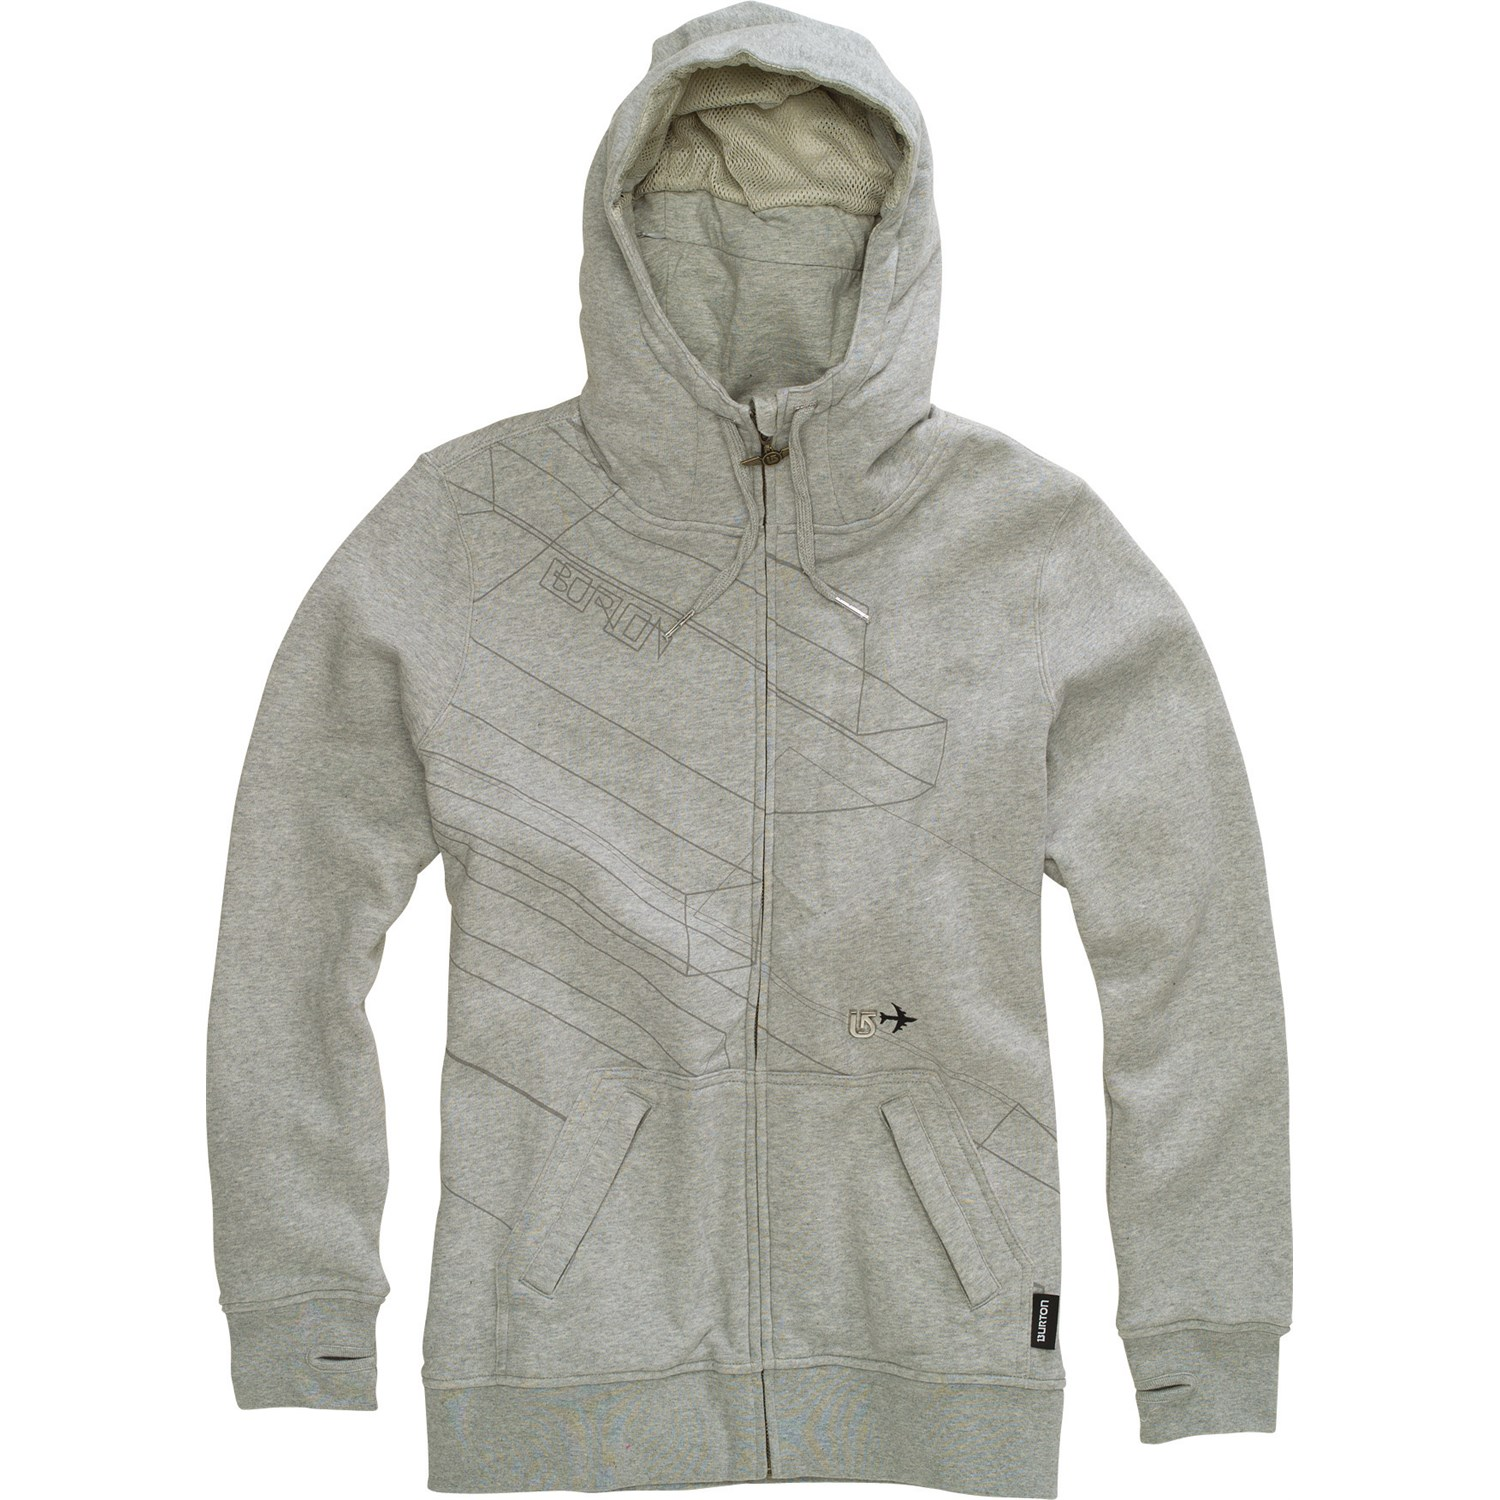 burton detail head share plus guide products porter excursion online sleeper hoodie